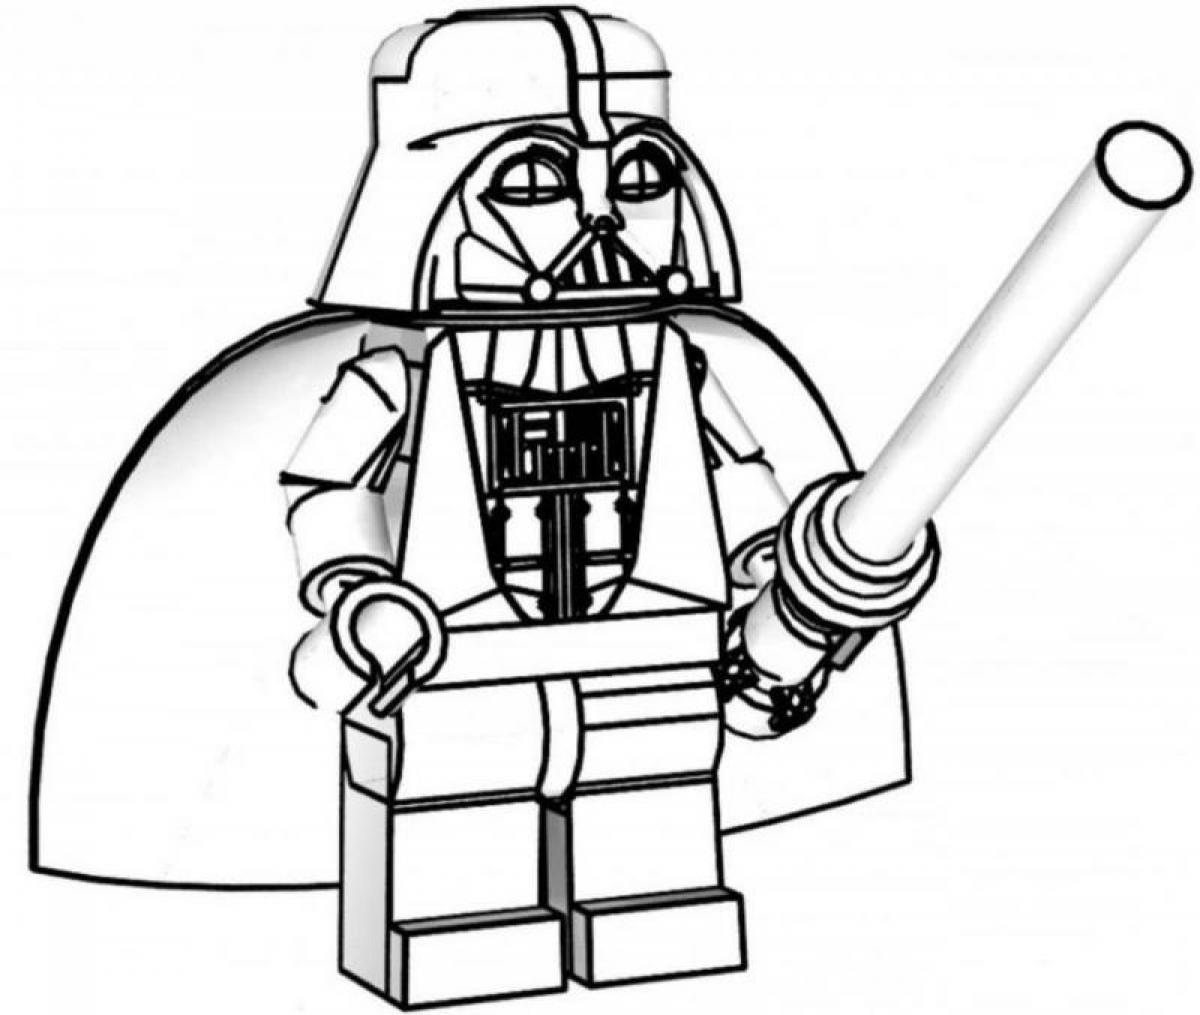 darth vader coloring pictures darth vader coloring pages to download and print for free pictures darth coloring vader 1 1